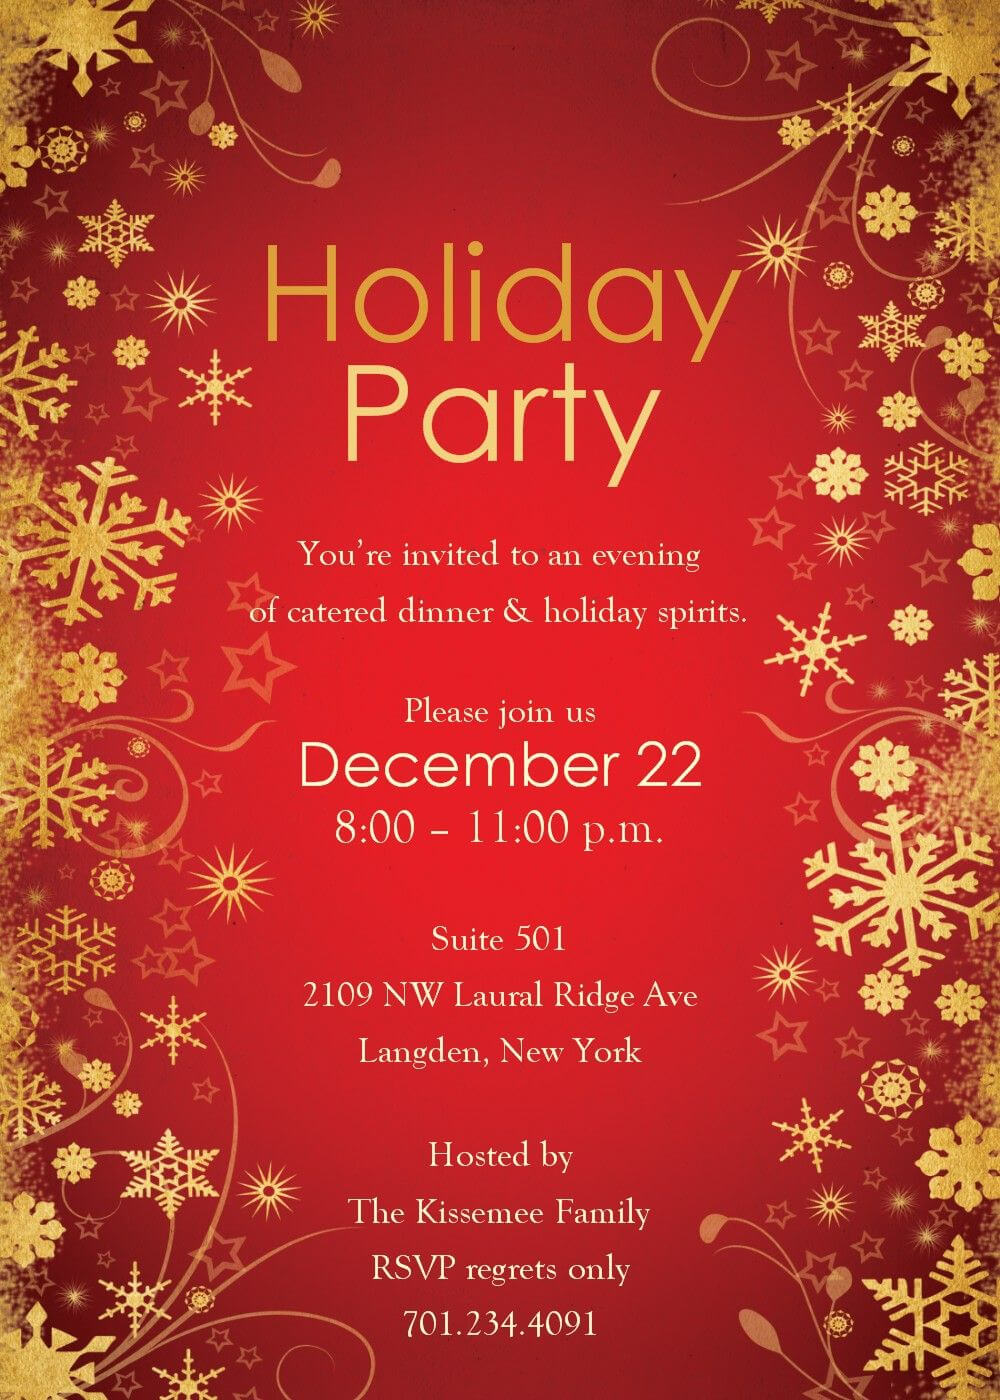 Christmas Party Invitations Templates Word | Christmas Party Pertaining To Free Christmas Invitation Templates For Word